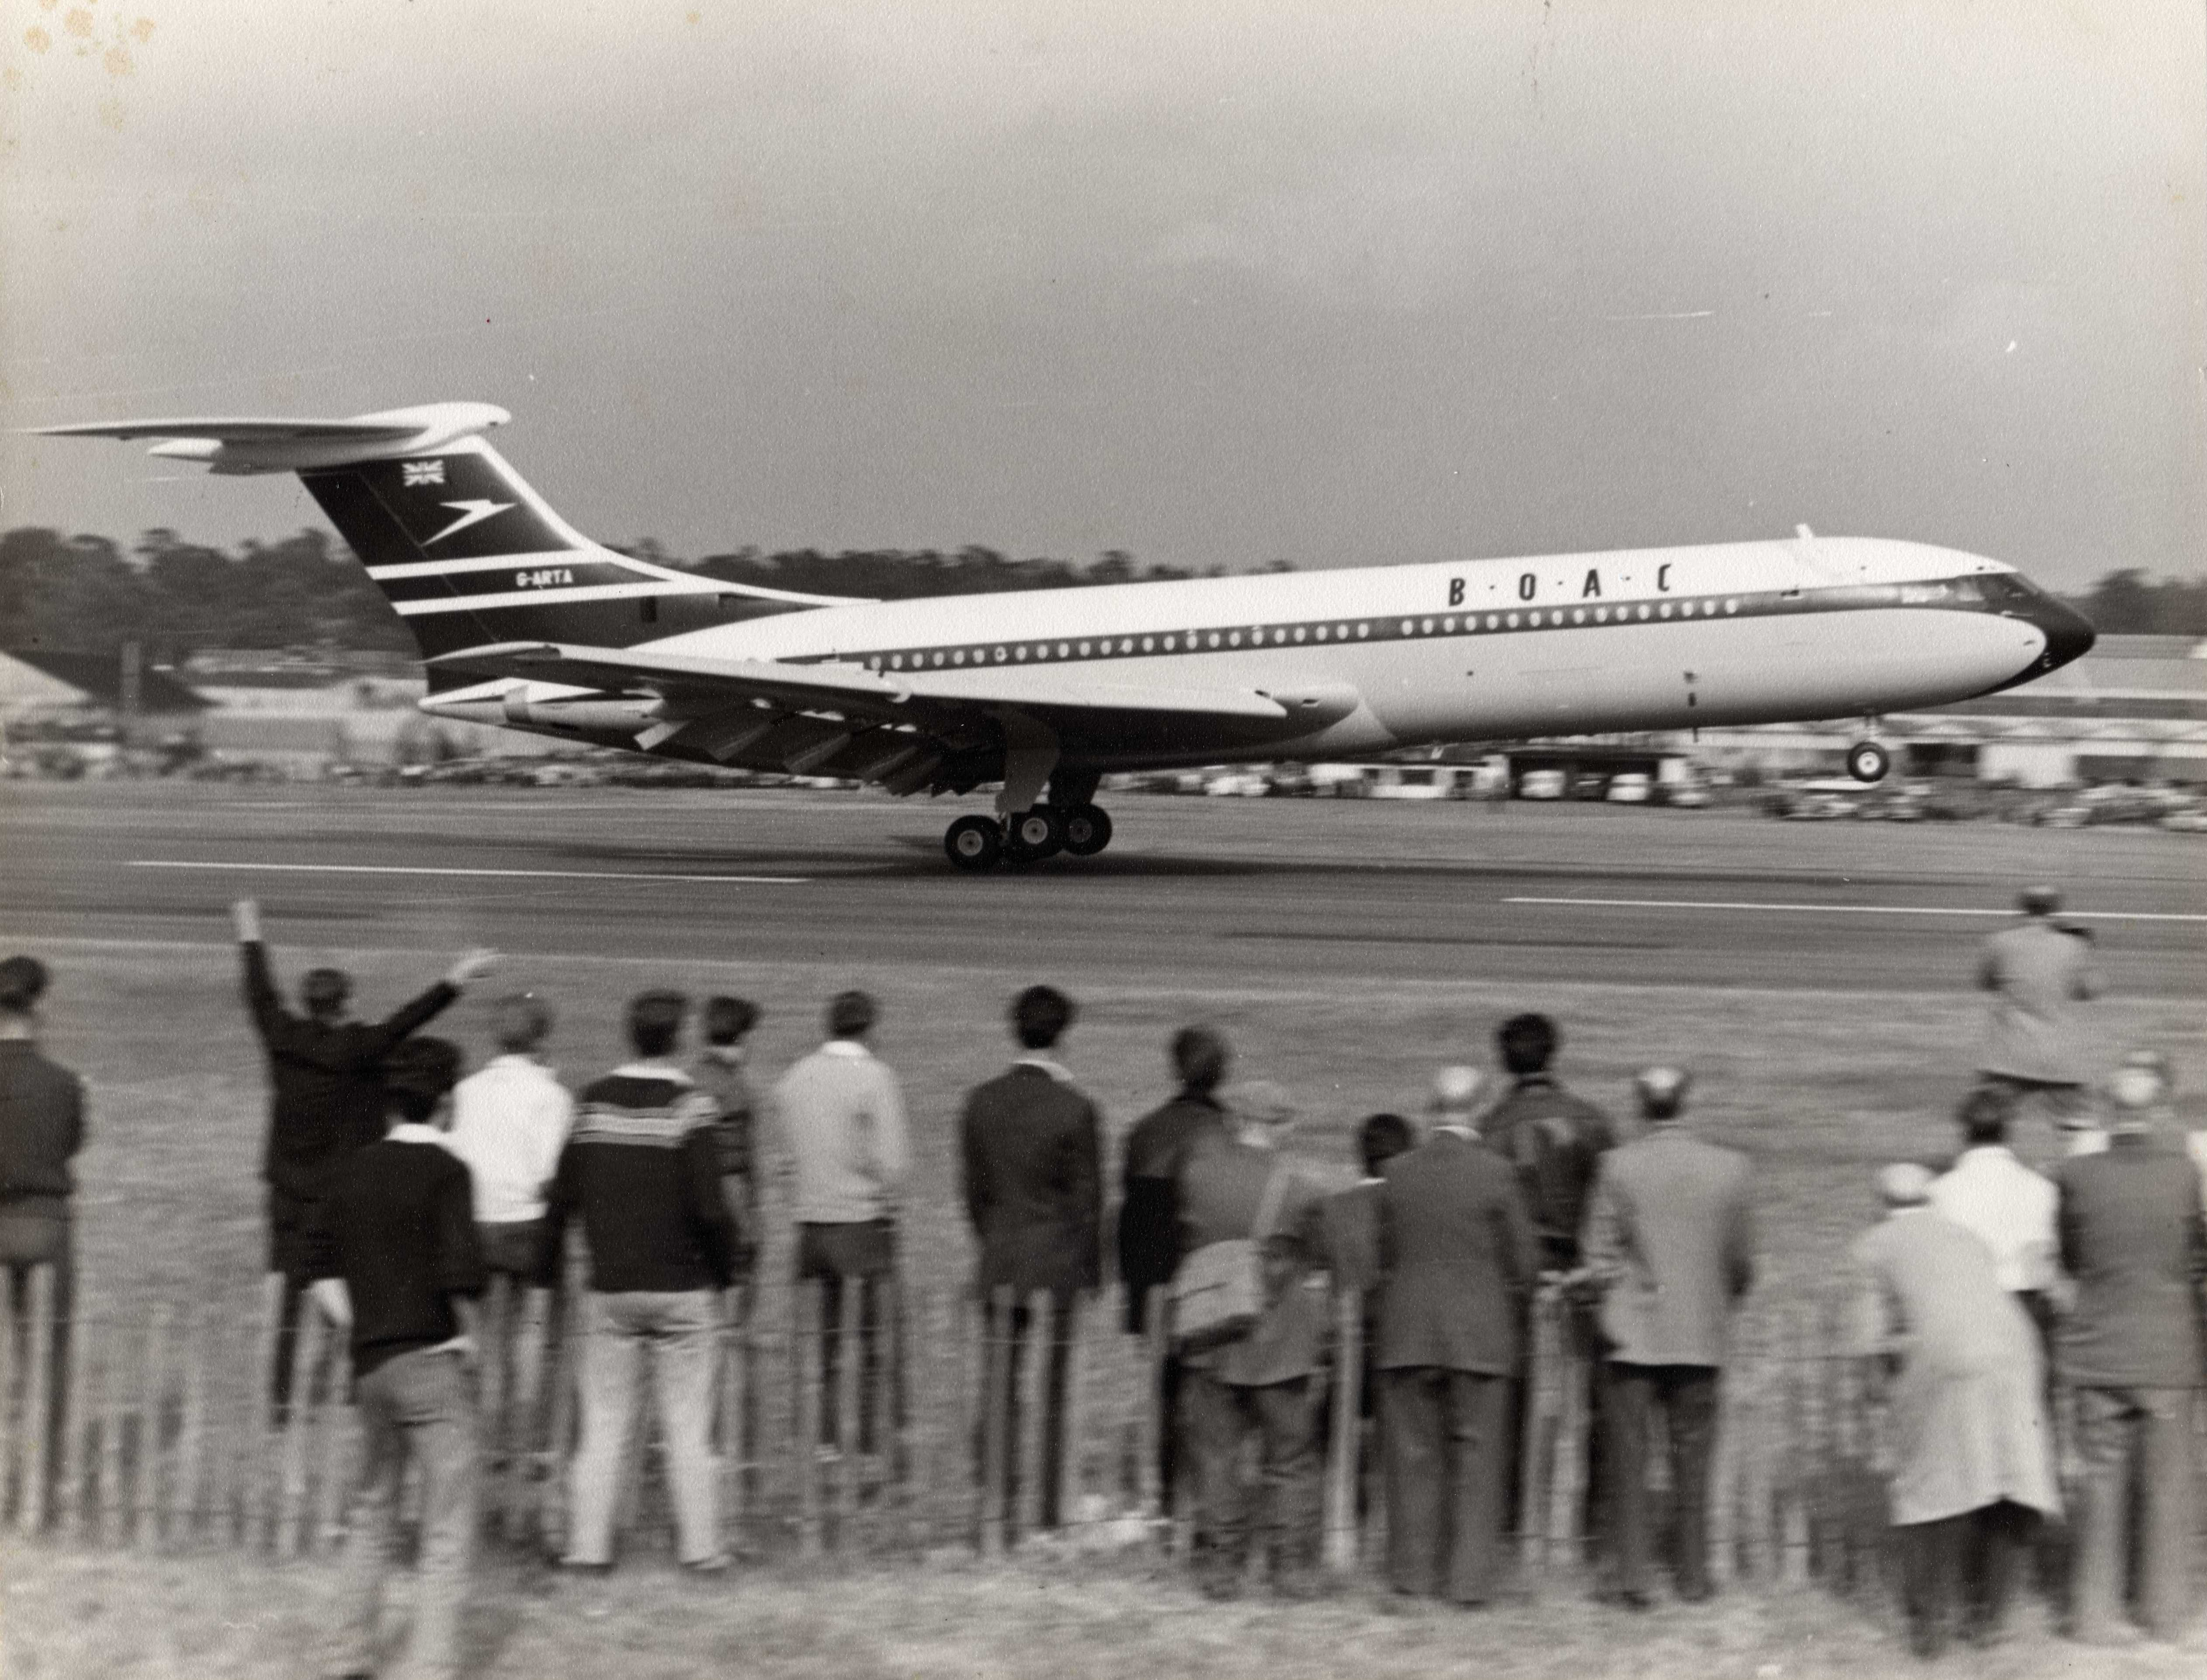 The first flight of the VC10 in 1962